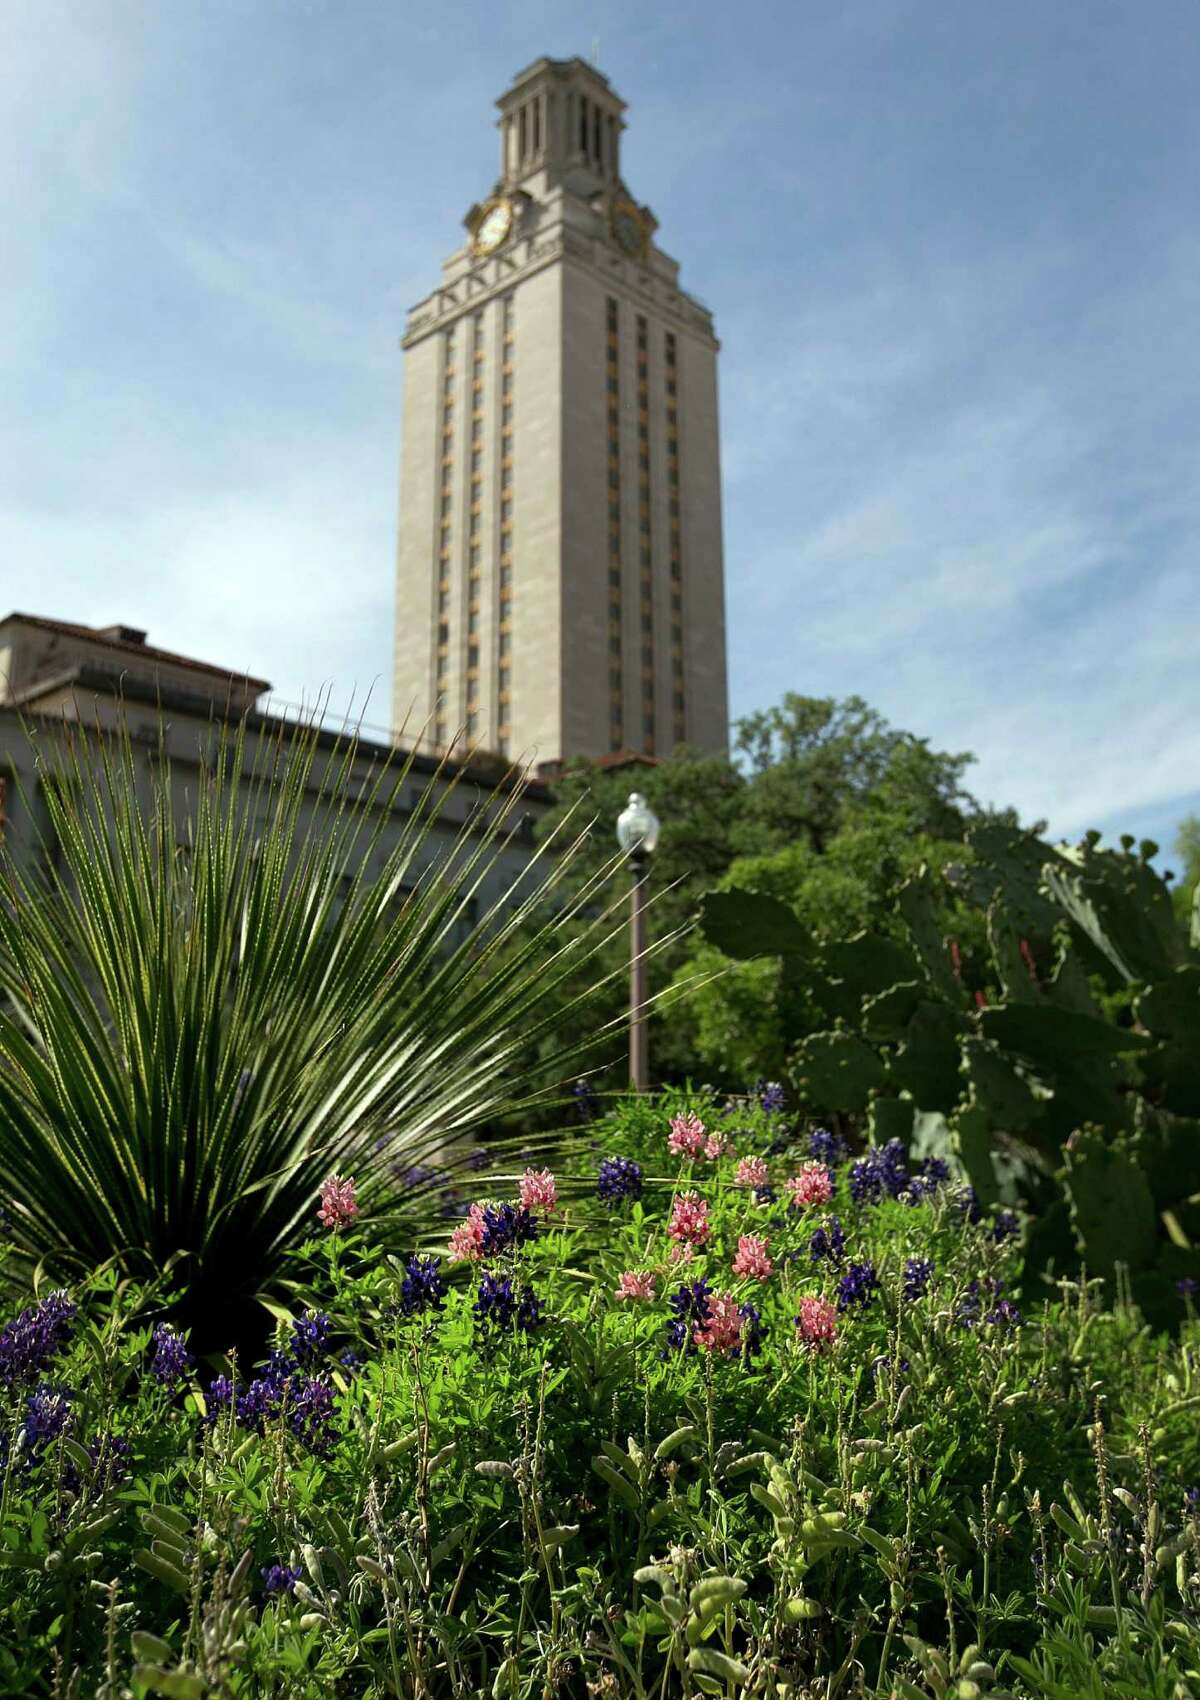 Speculation is growing about some Aggie-maroon bluebonnets blooming near the University of Texas Tower.